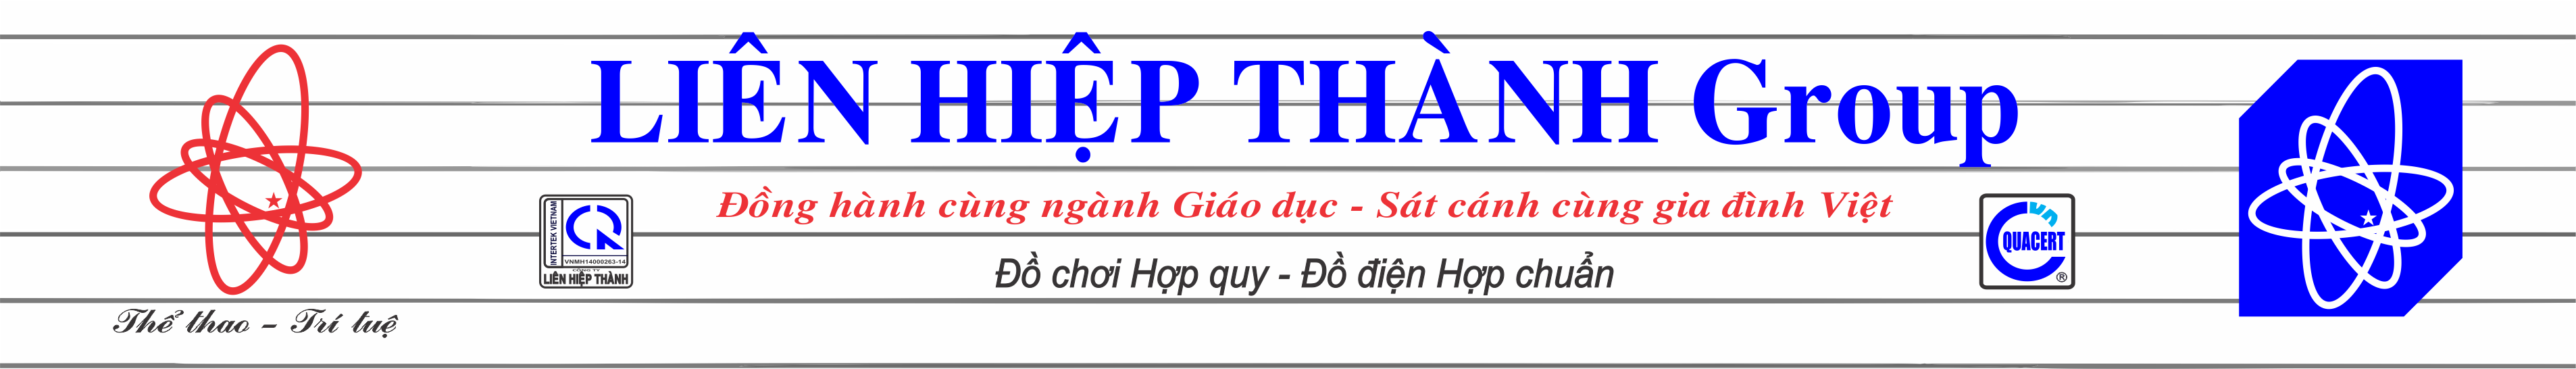 Lien Hiep Thanh Group